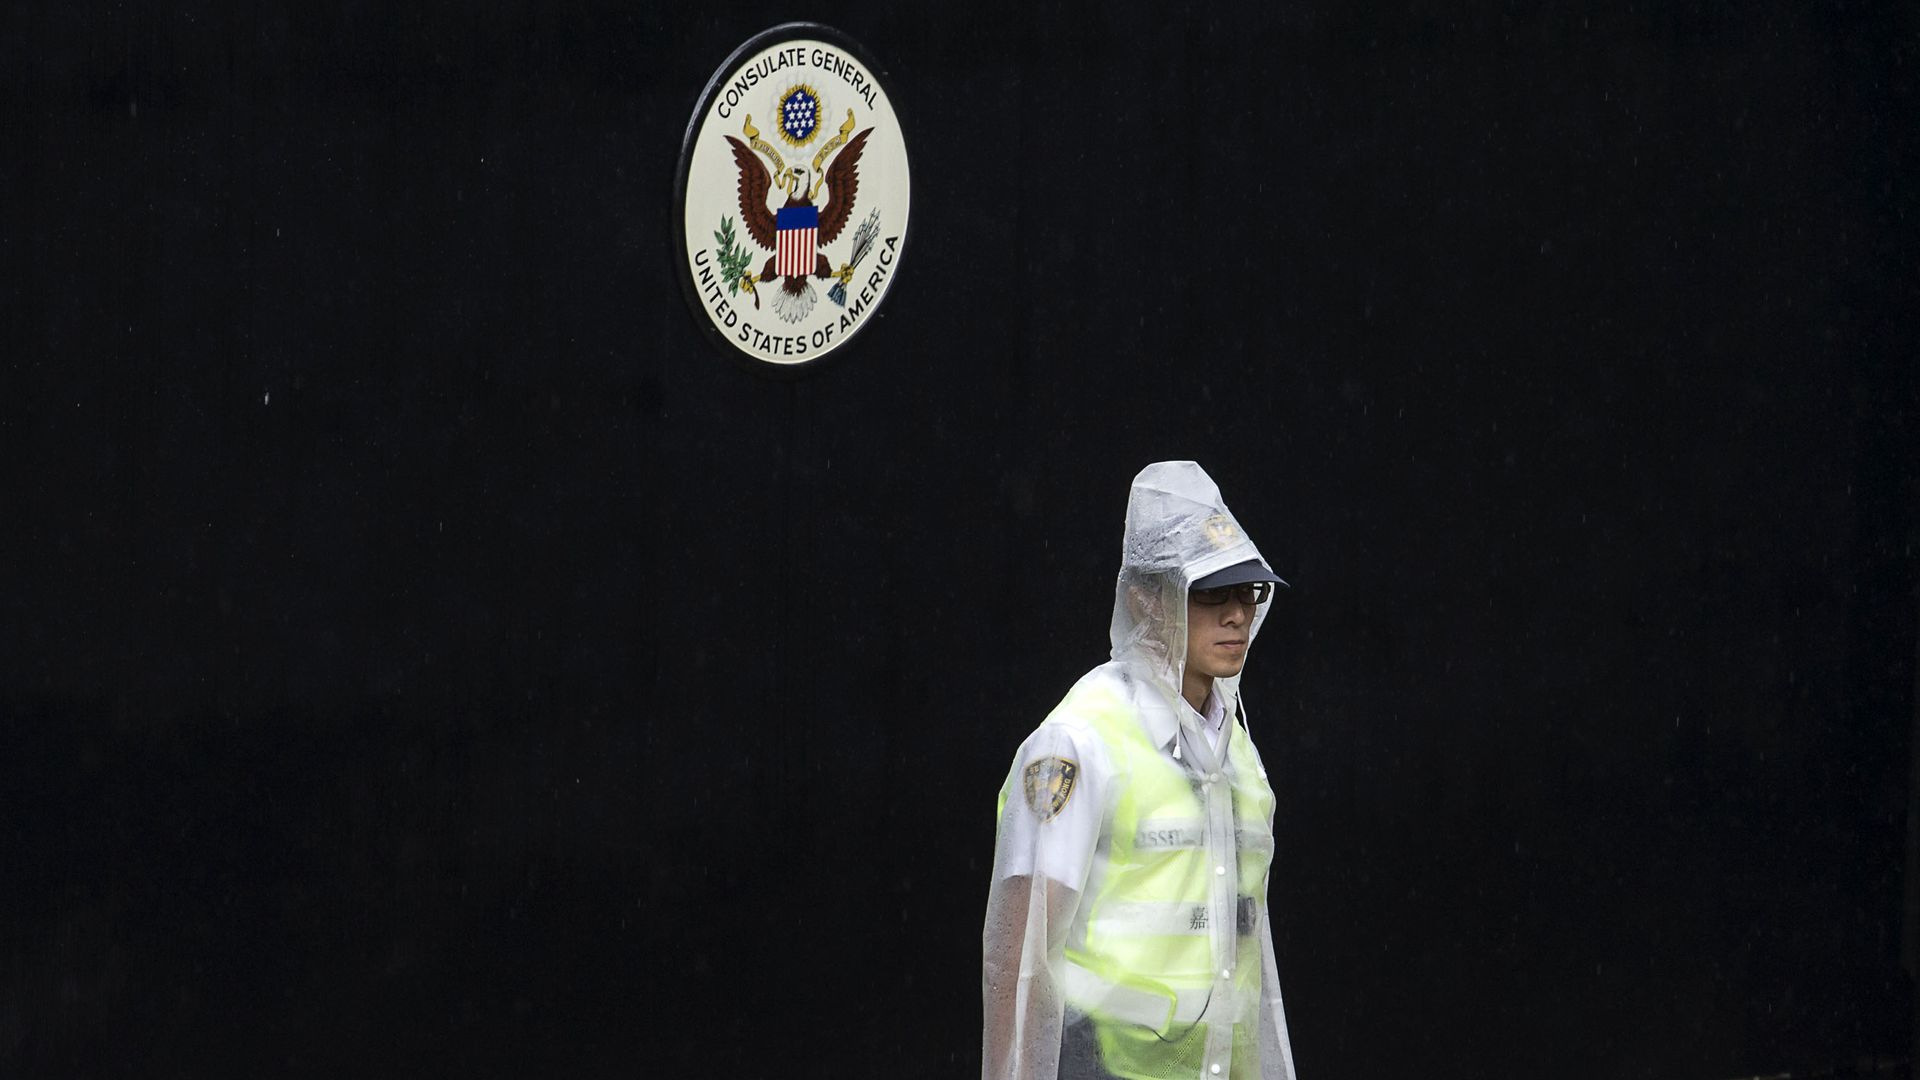 A police officer at the entry of a U.S. consulate in China.